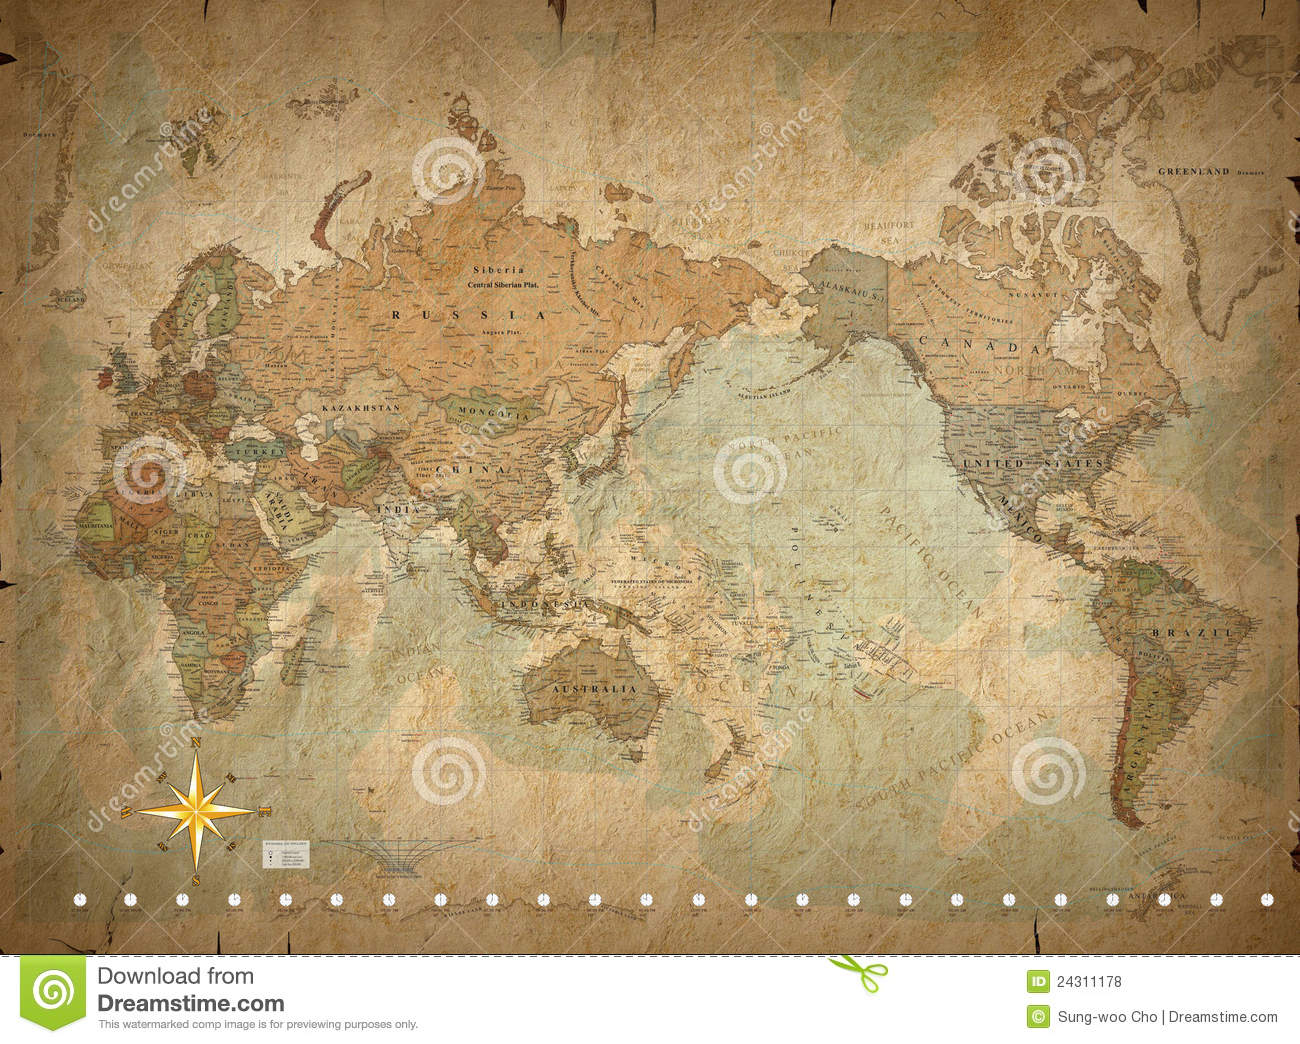 Antique world map stock photo image of global background 24311178 antique world map gumiabroncs Images